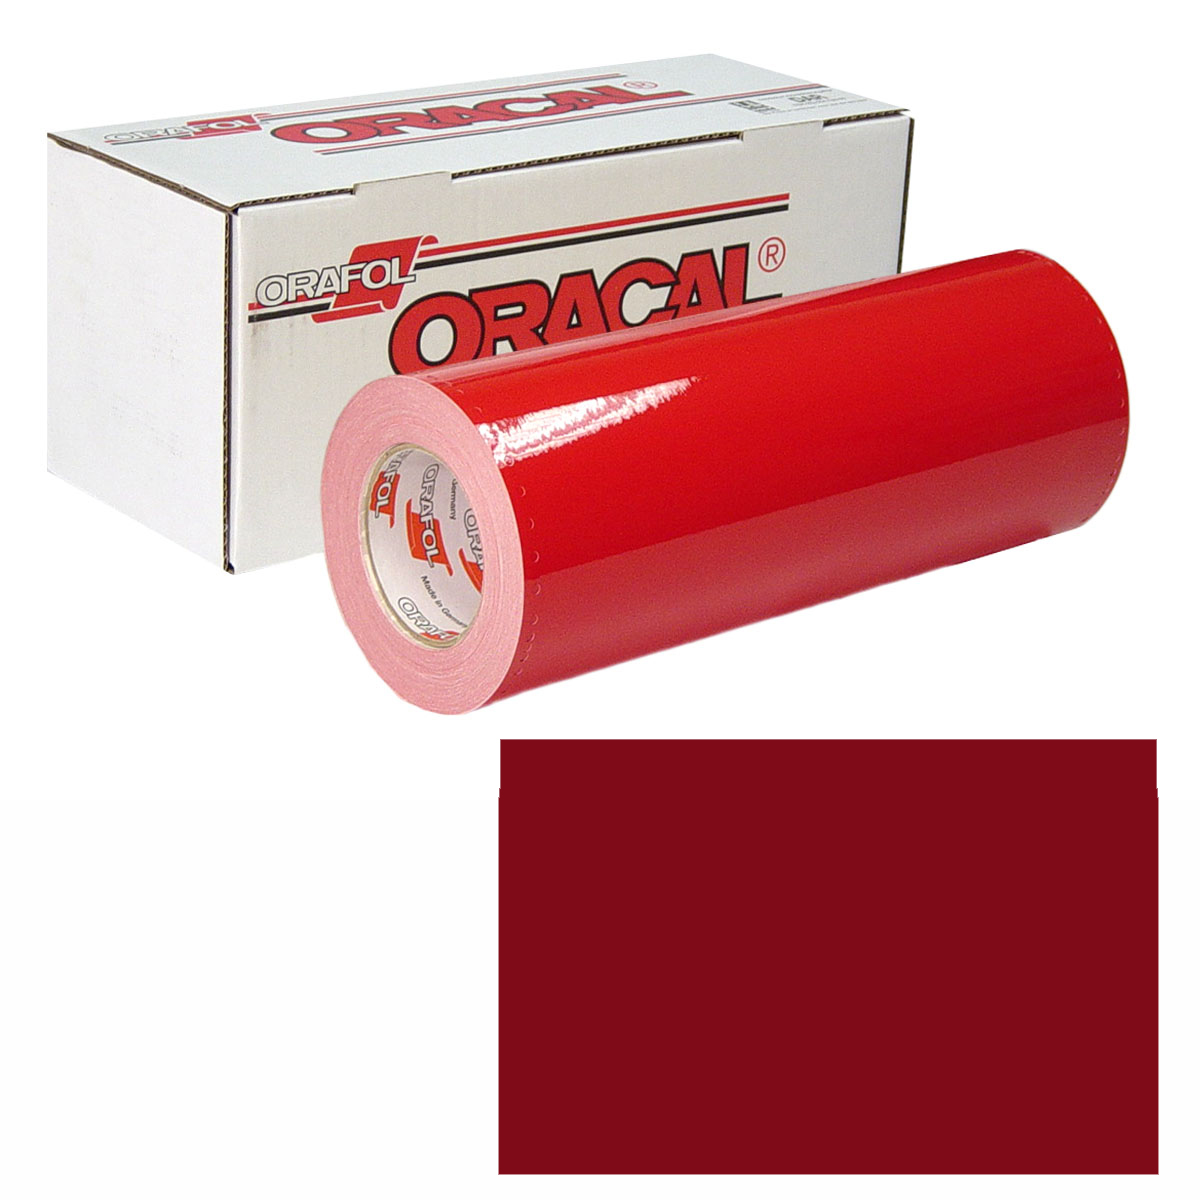 ORACAL 951M Unp 48in X 10yd 367 Red Metallic